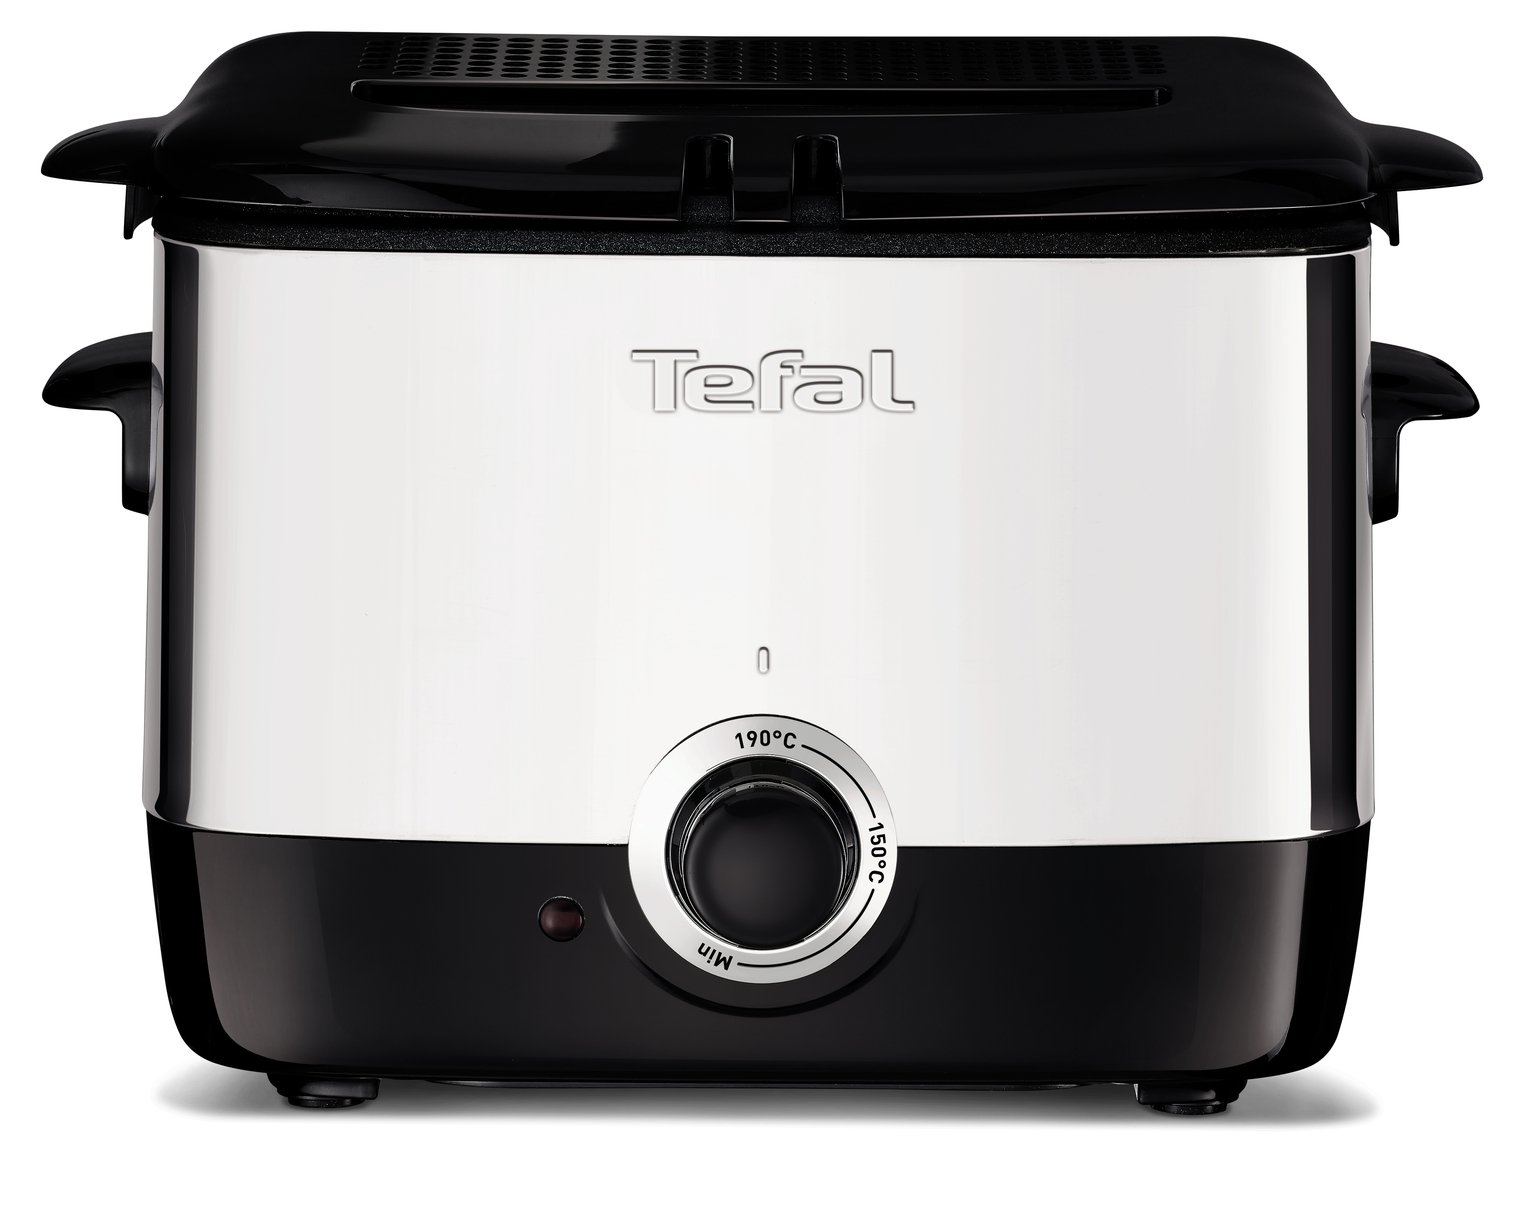 Tefal FF220040 Pro Mini Fryer - Stainless Steel. from Tefal